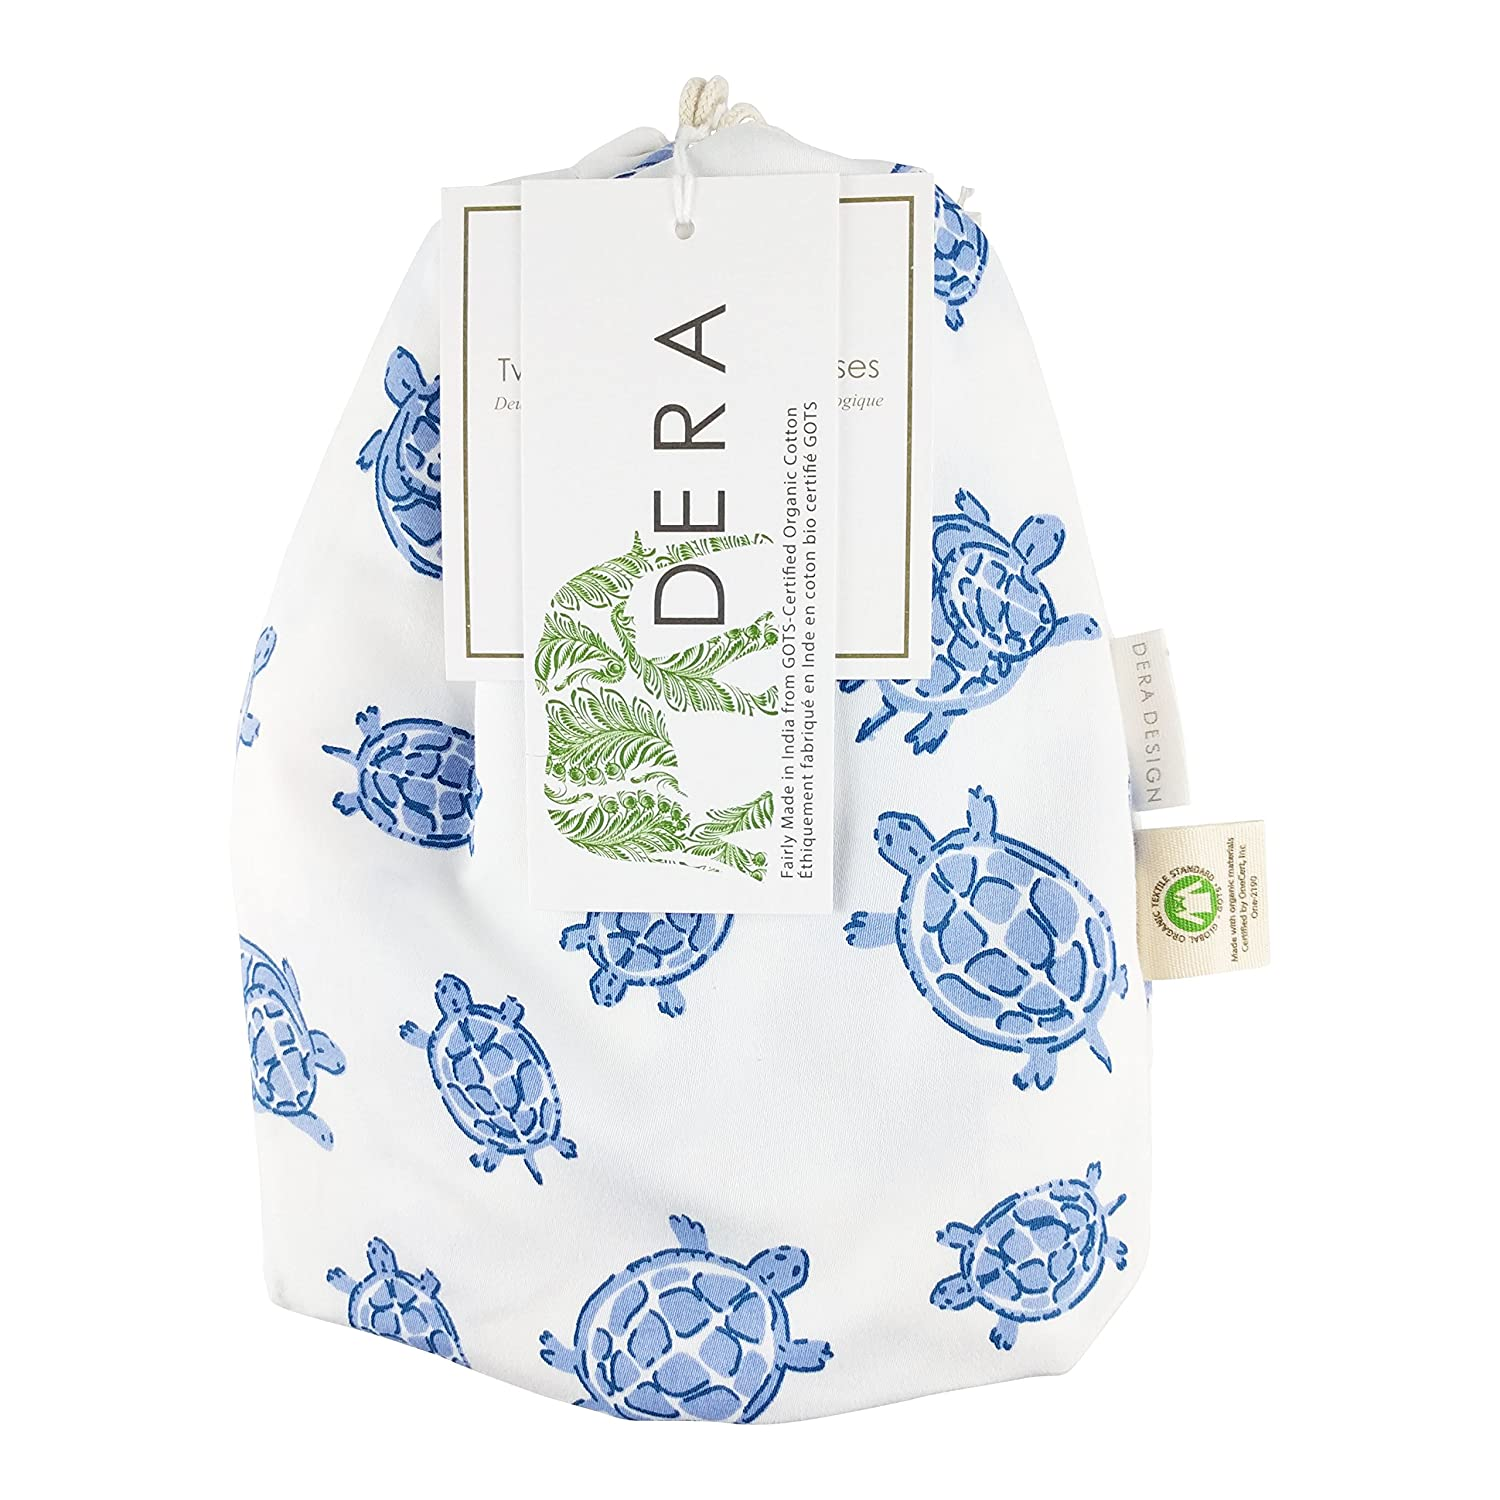 """Organic Cotton Portable Playard Fitted Sheet, 27"""" x 39"""" x 5"""" to Fit Pack 'n Play for Babies & Toddlers, Turtle Print (Blue) Dera Design"""